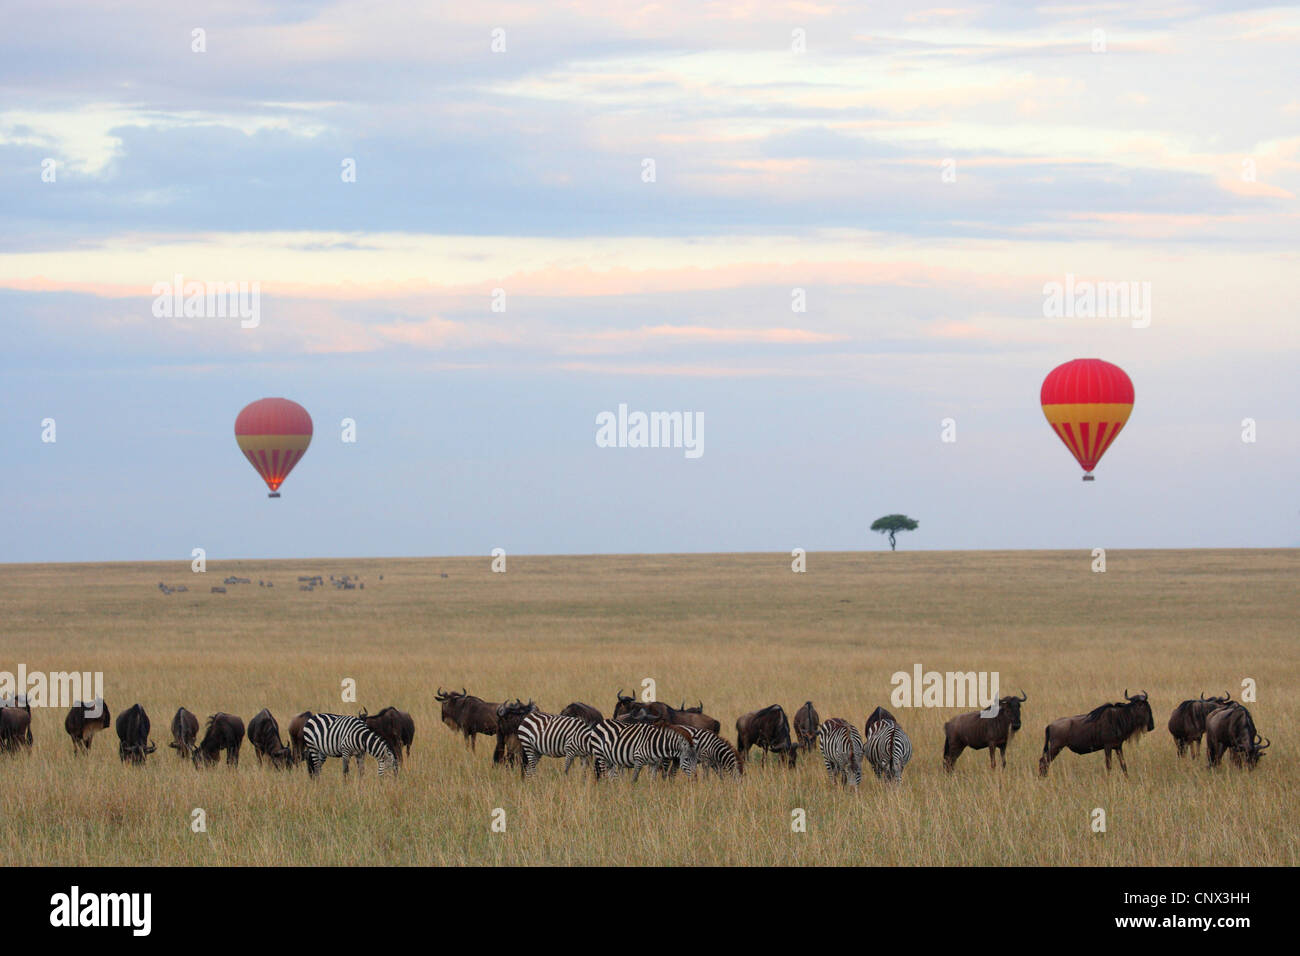 Balloon safari in the Masai Mara with zebras and wildbeests, Kenya, Masai Mara National Park - Stock Image